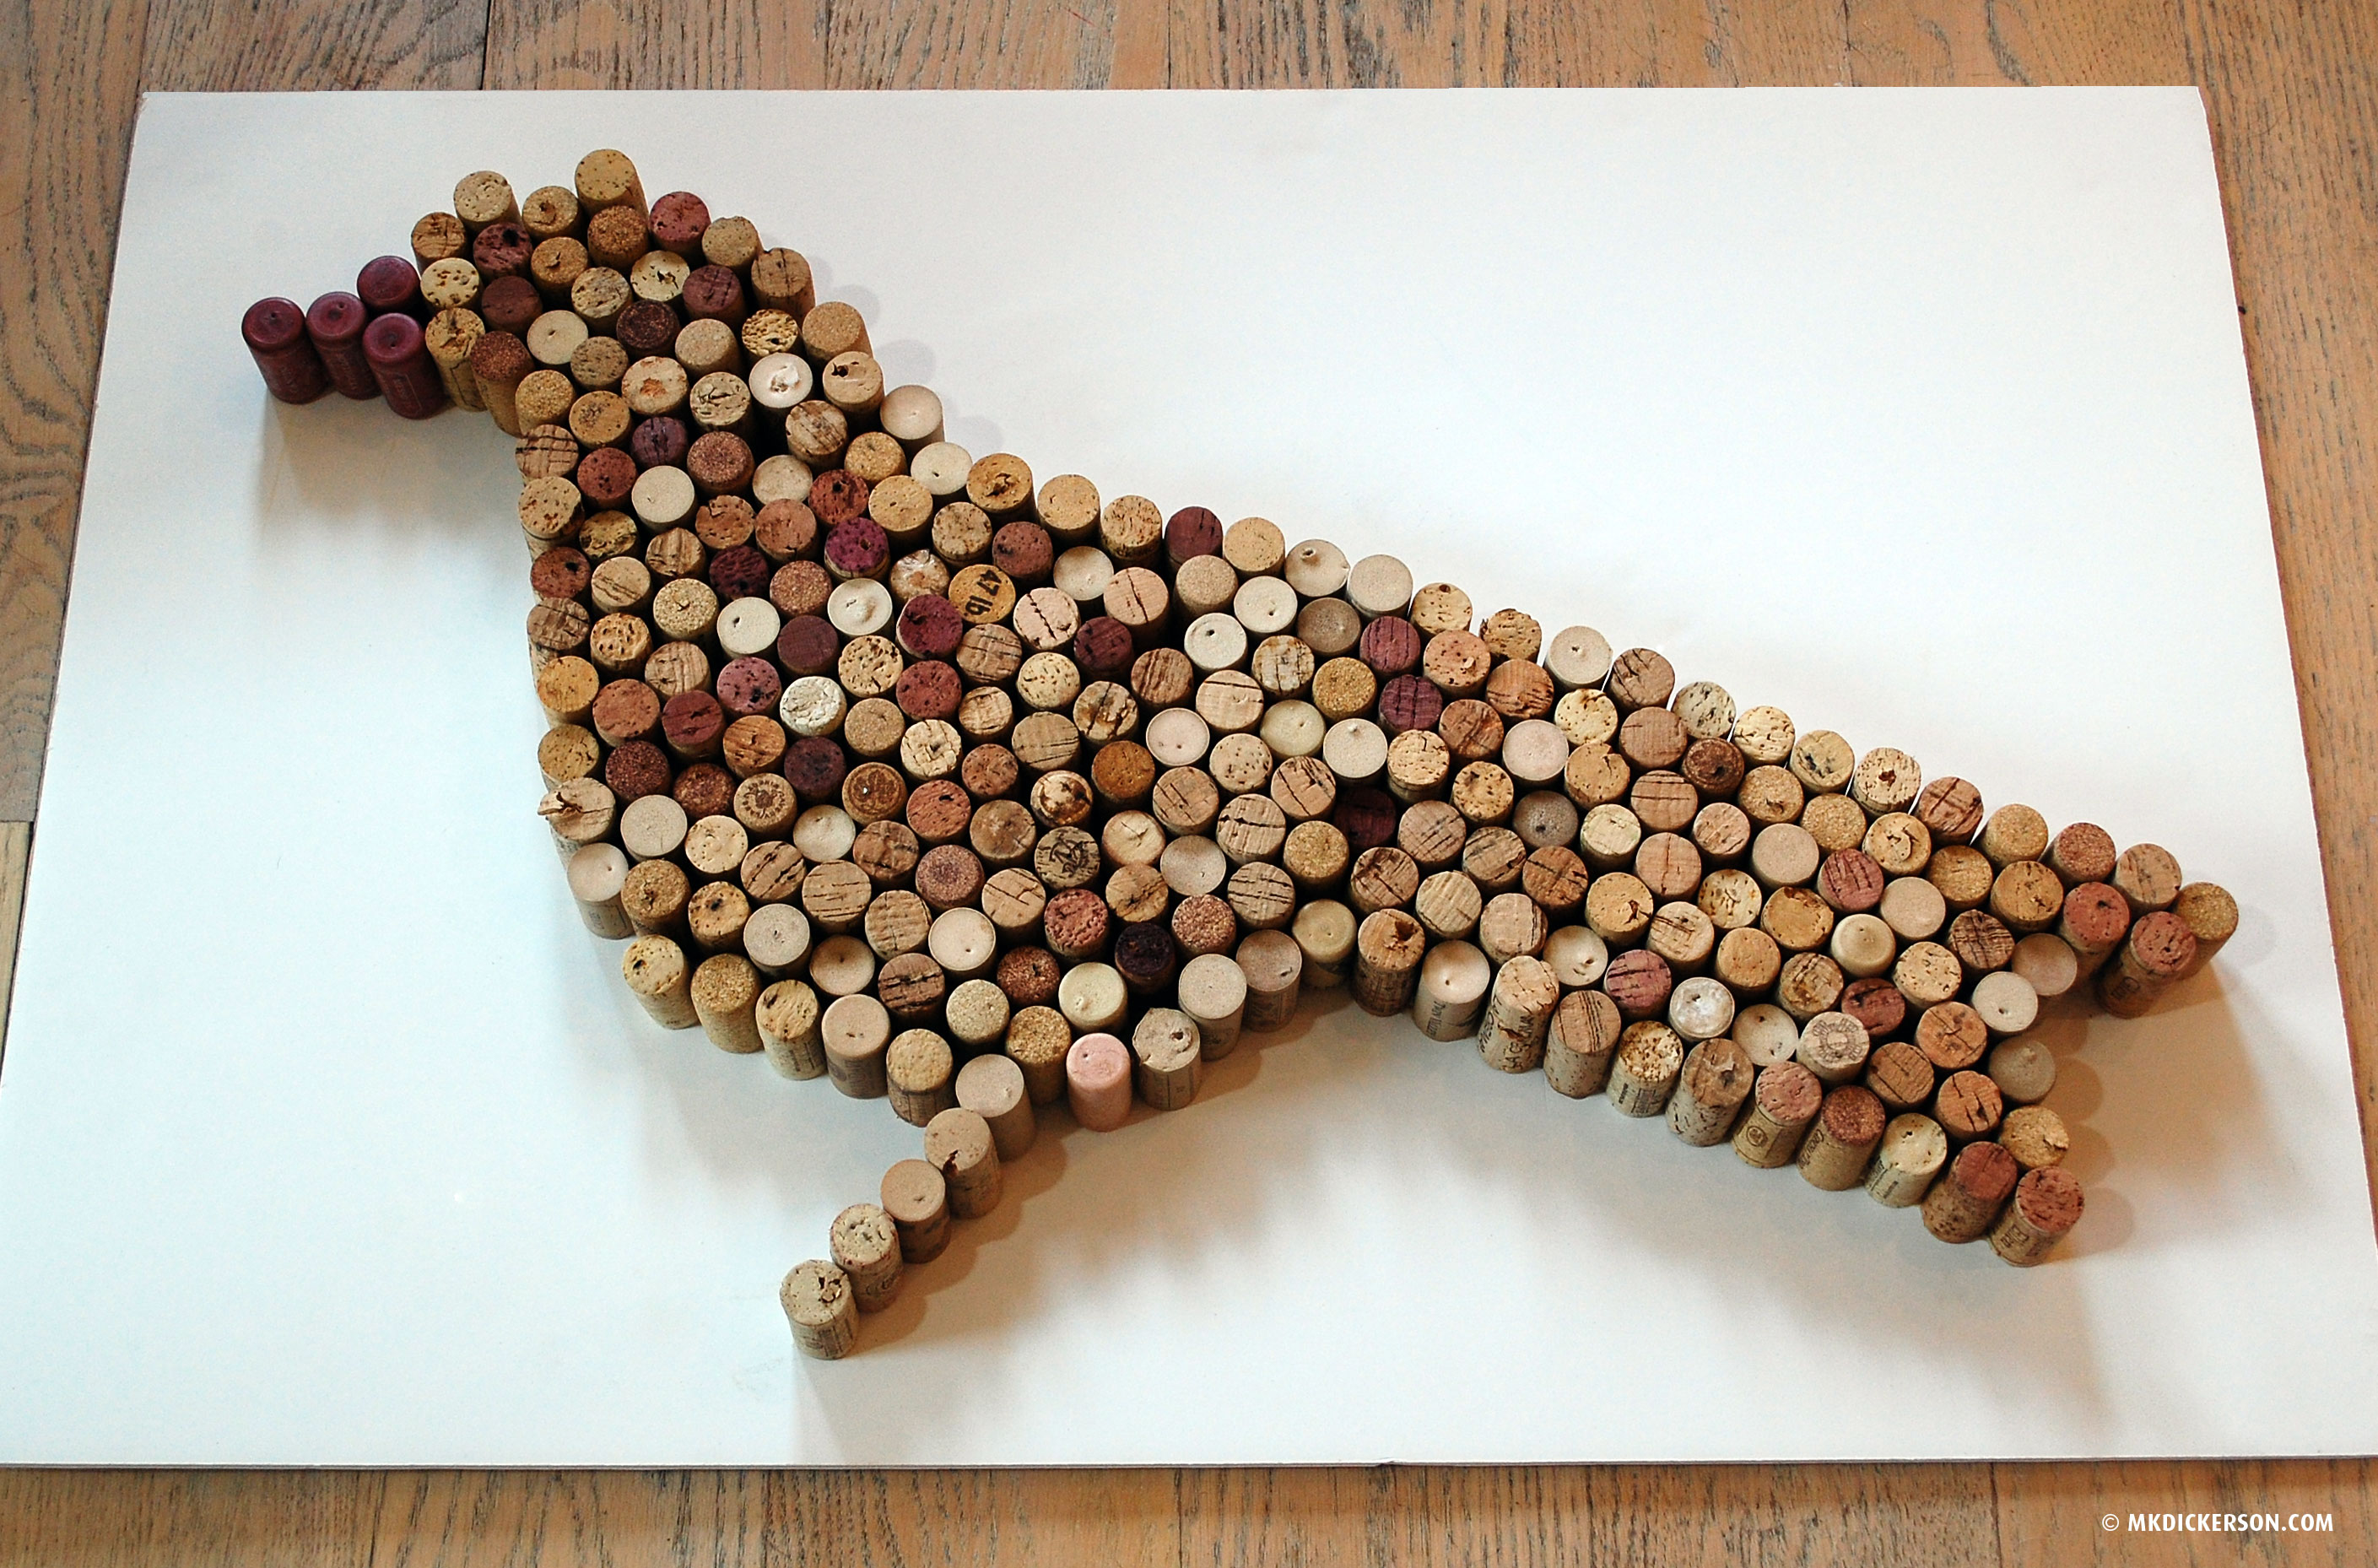 Bird house plan made out of wine corks plans free download for How to build a birdhouse out of wine corks